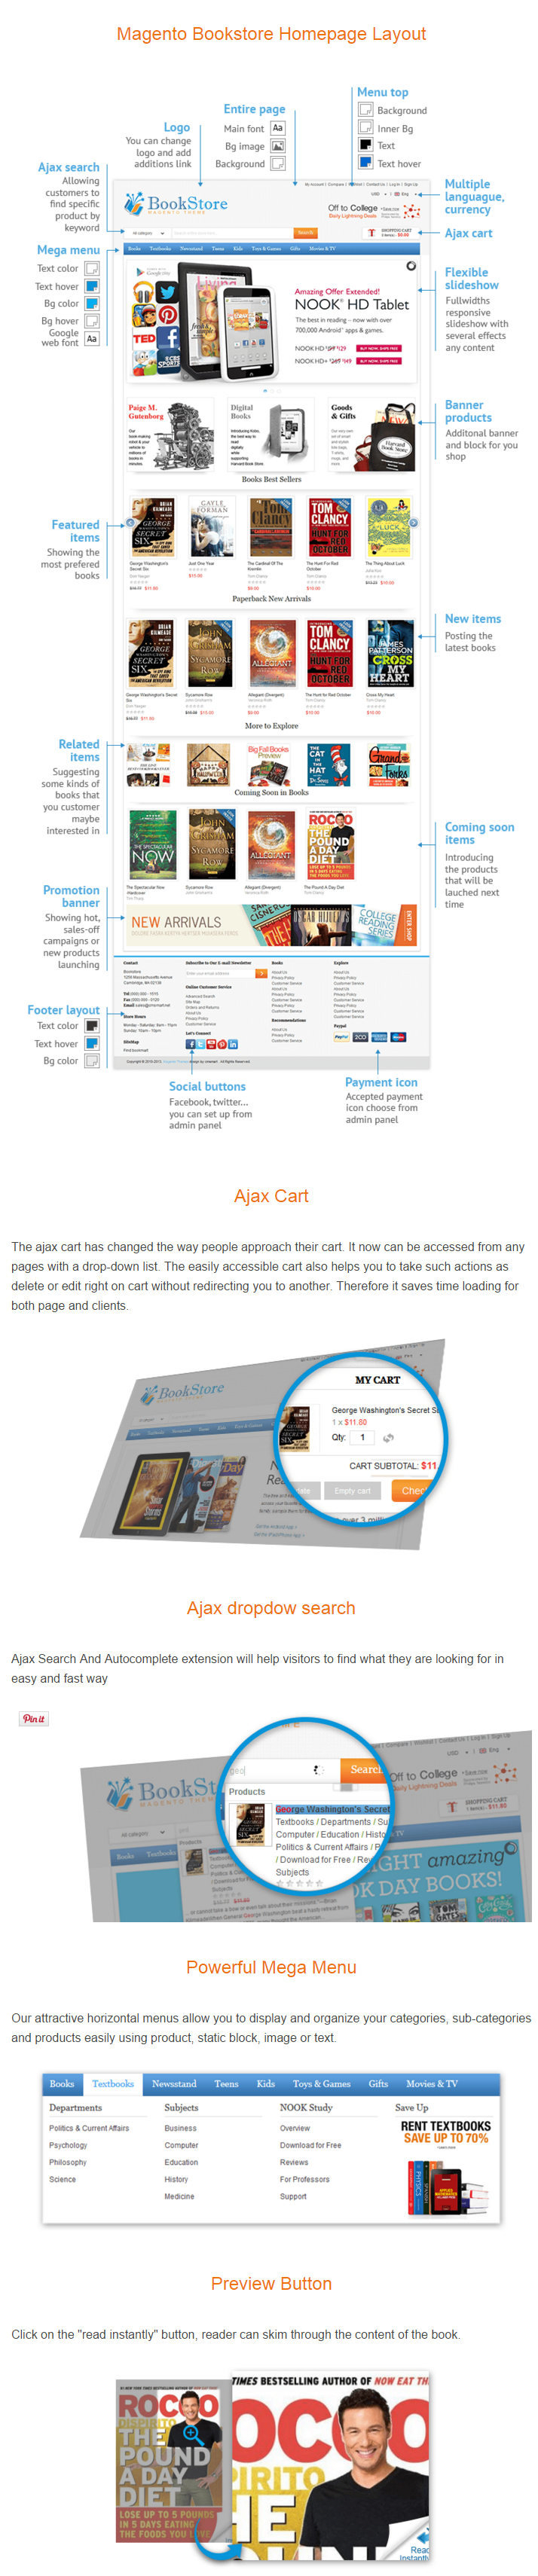 Magento Bookstore Theme